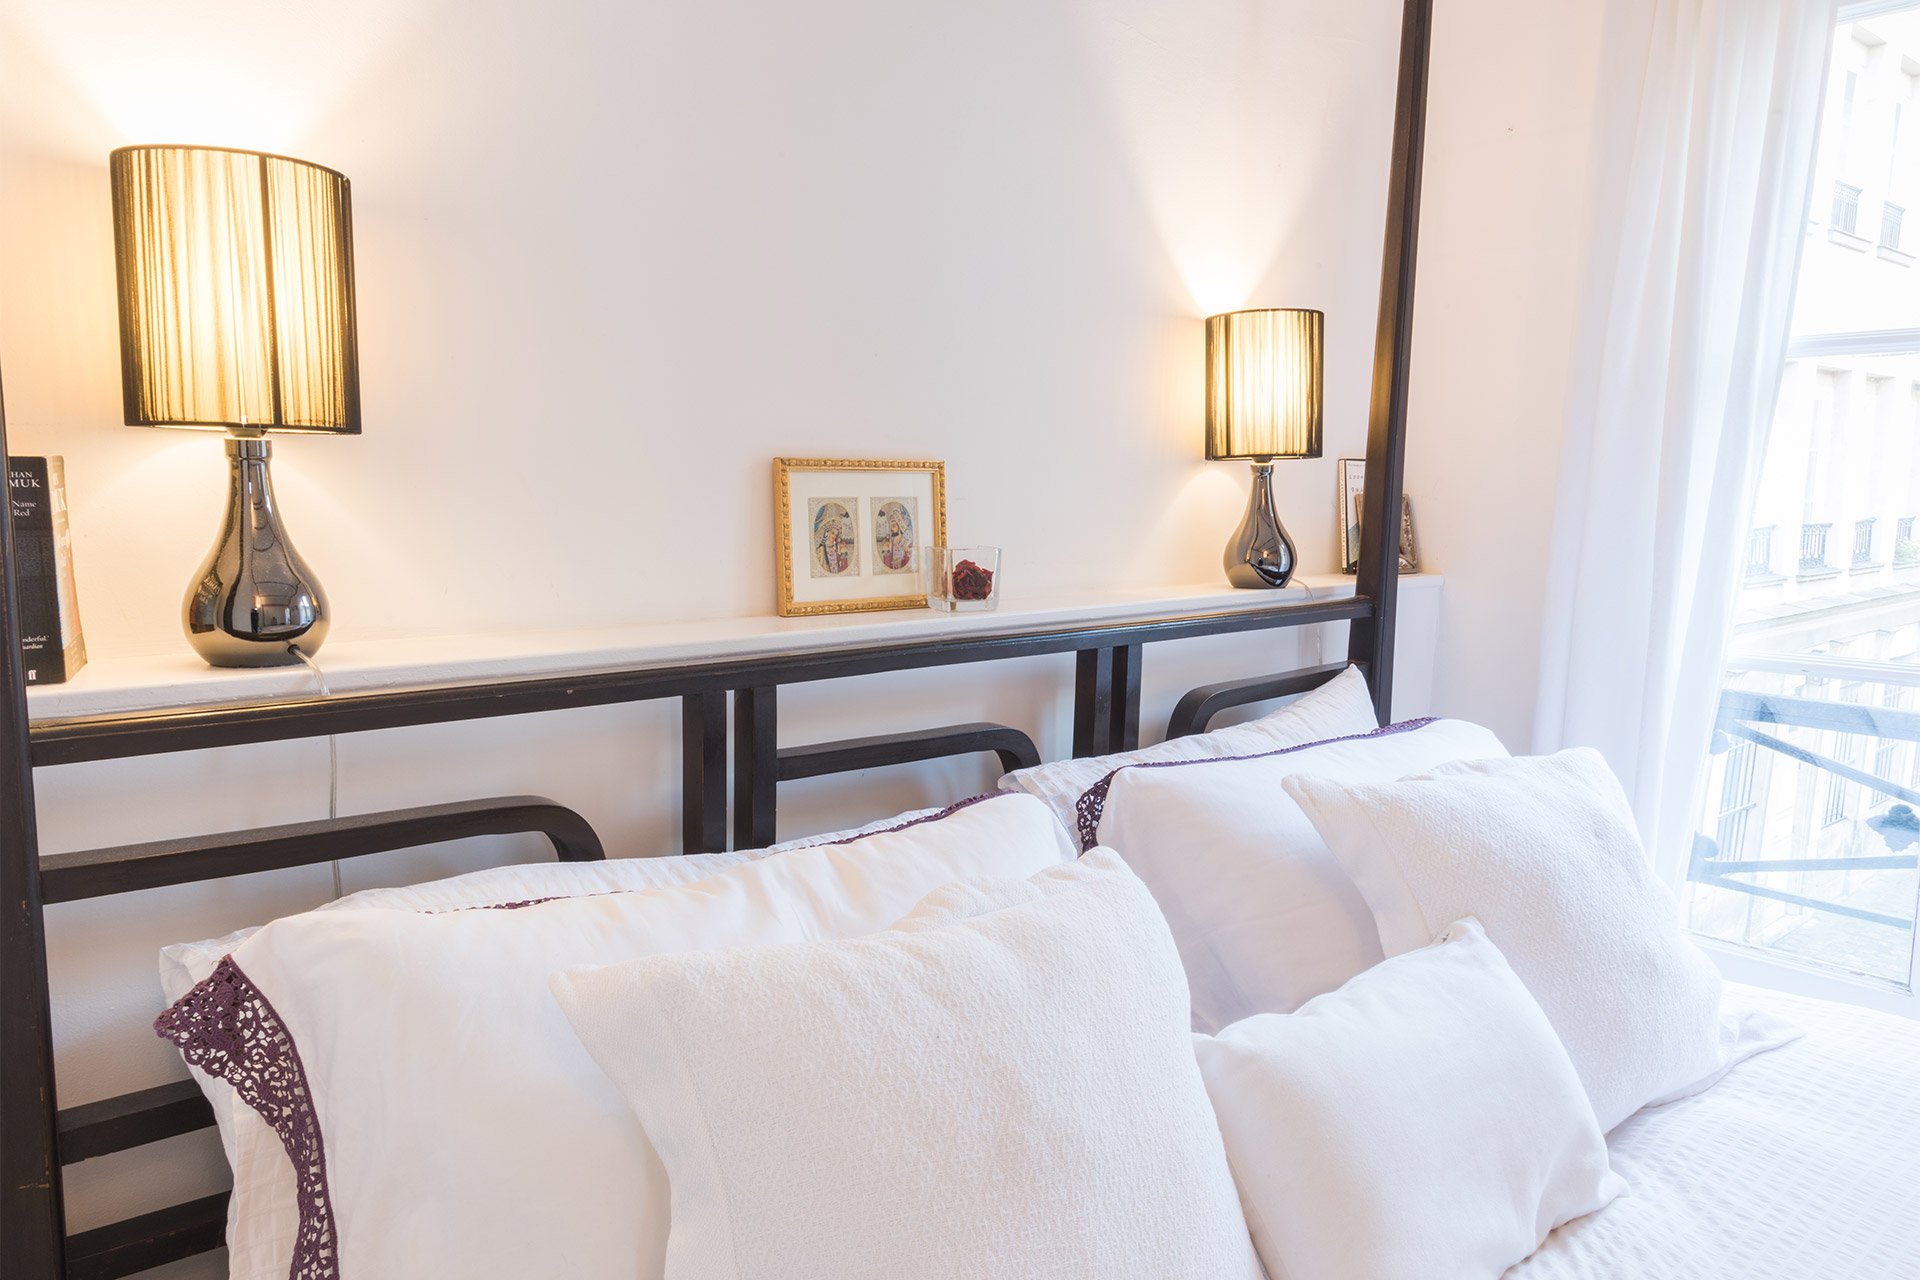 High quality linens, pillows and comforters in the Jacquere vacation rental offered by Paris Perfect